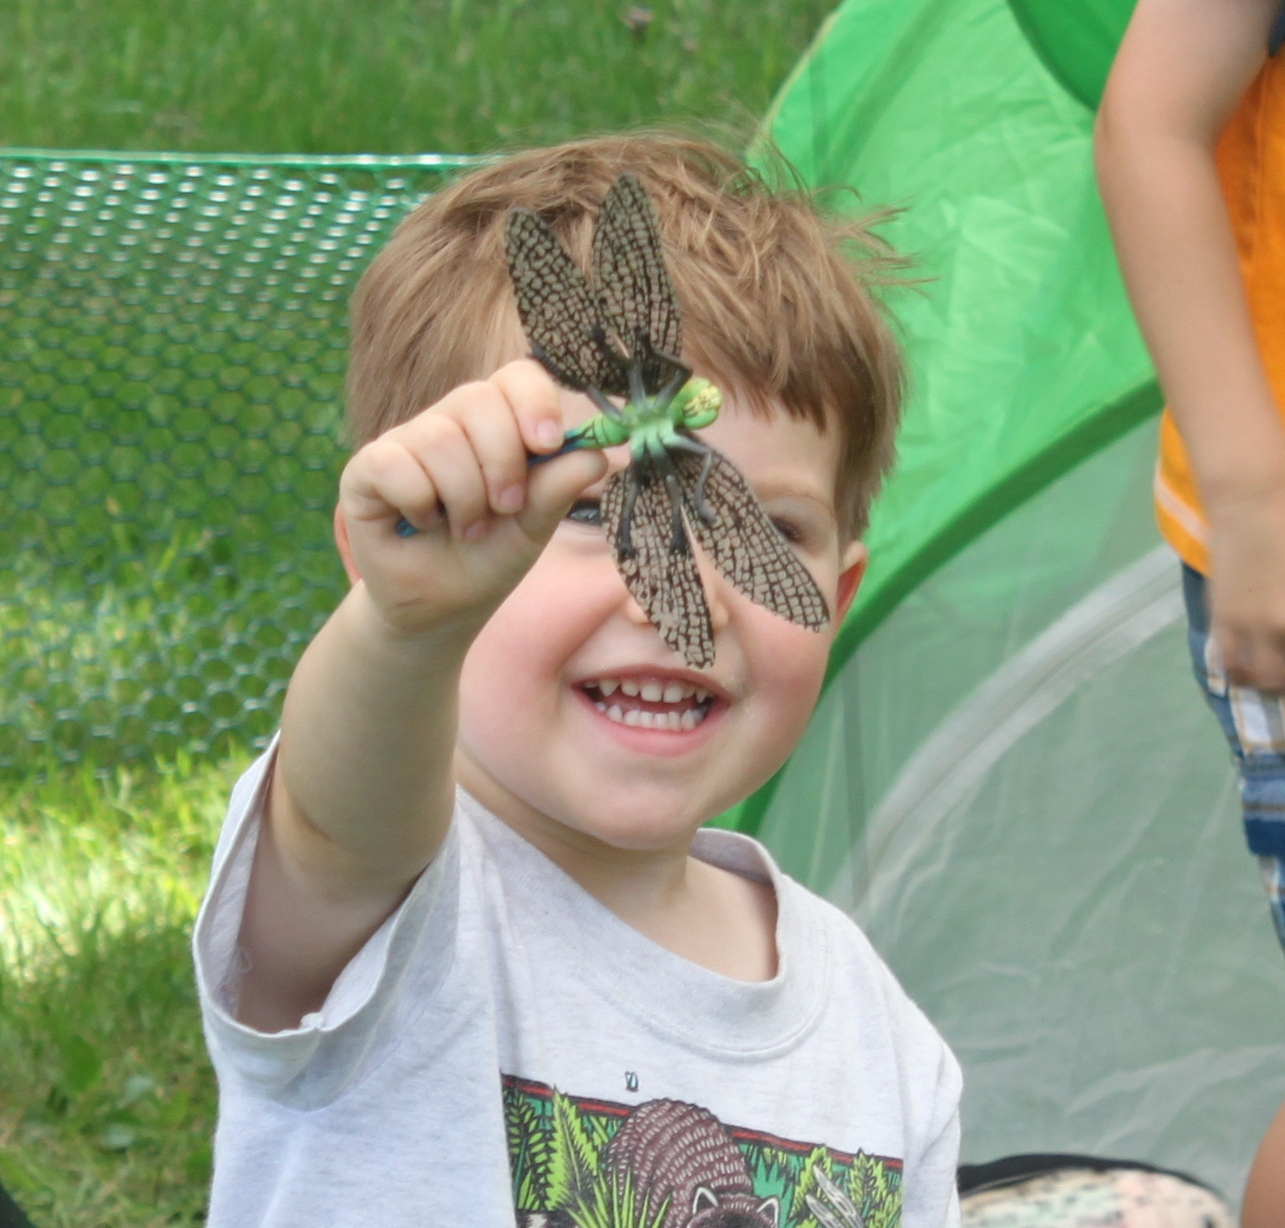 CLEVELAND METROPARKS KNEE HIGH NATURALIST EVENT IS A PERFECT FIT FOR KIDS AGES 2 TO 6